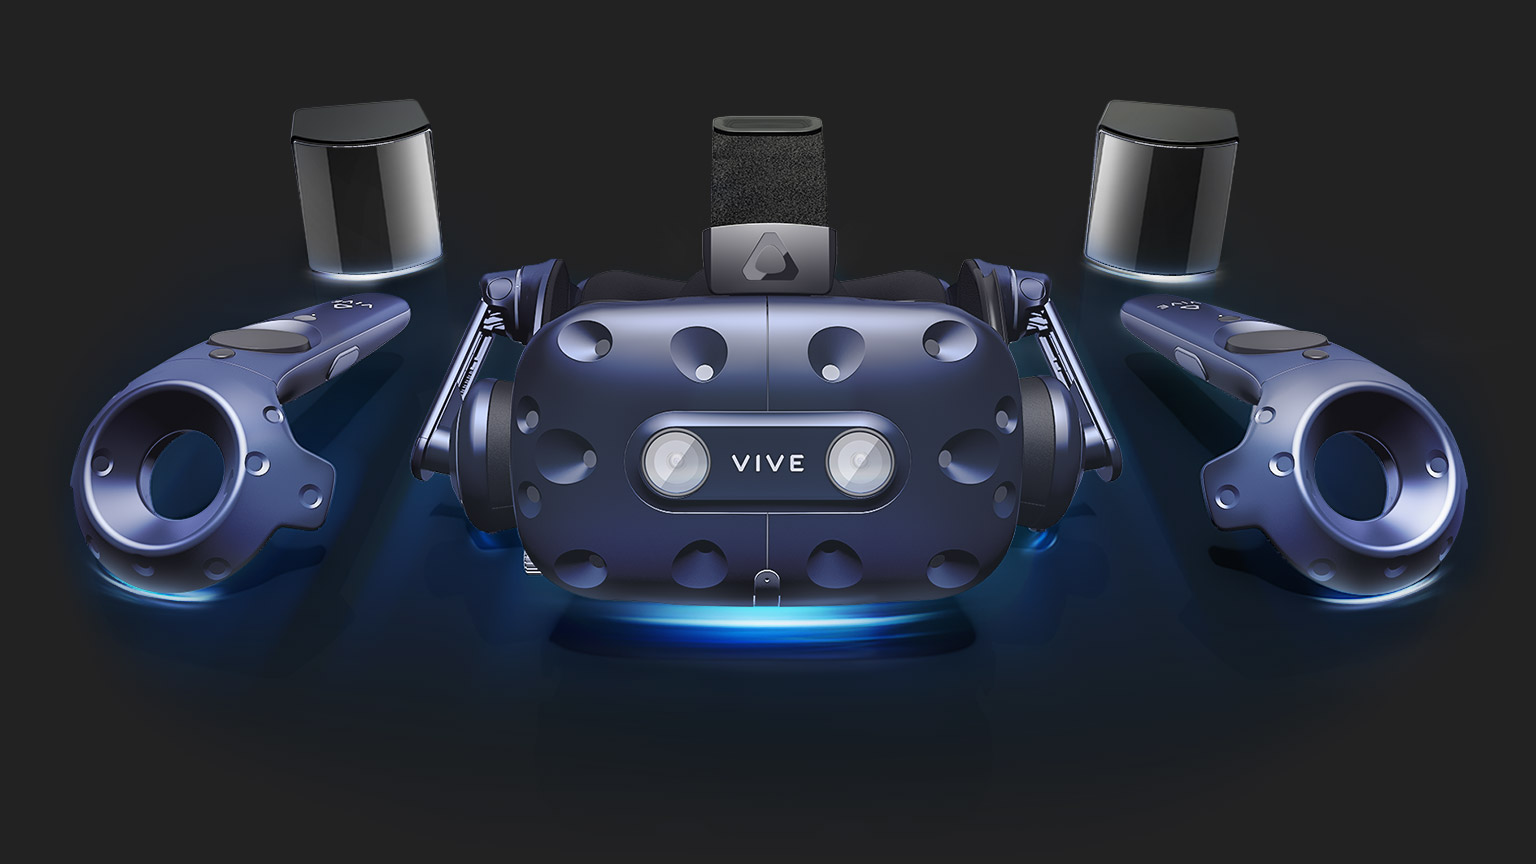 Vive Holiday Deals Include $200 off Vive Pro & Free 'Fallout 4 VR